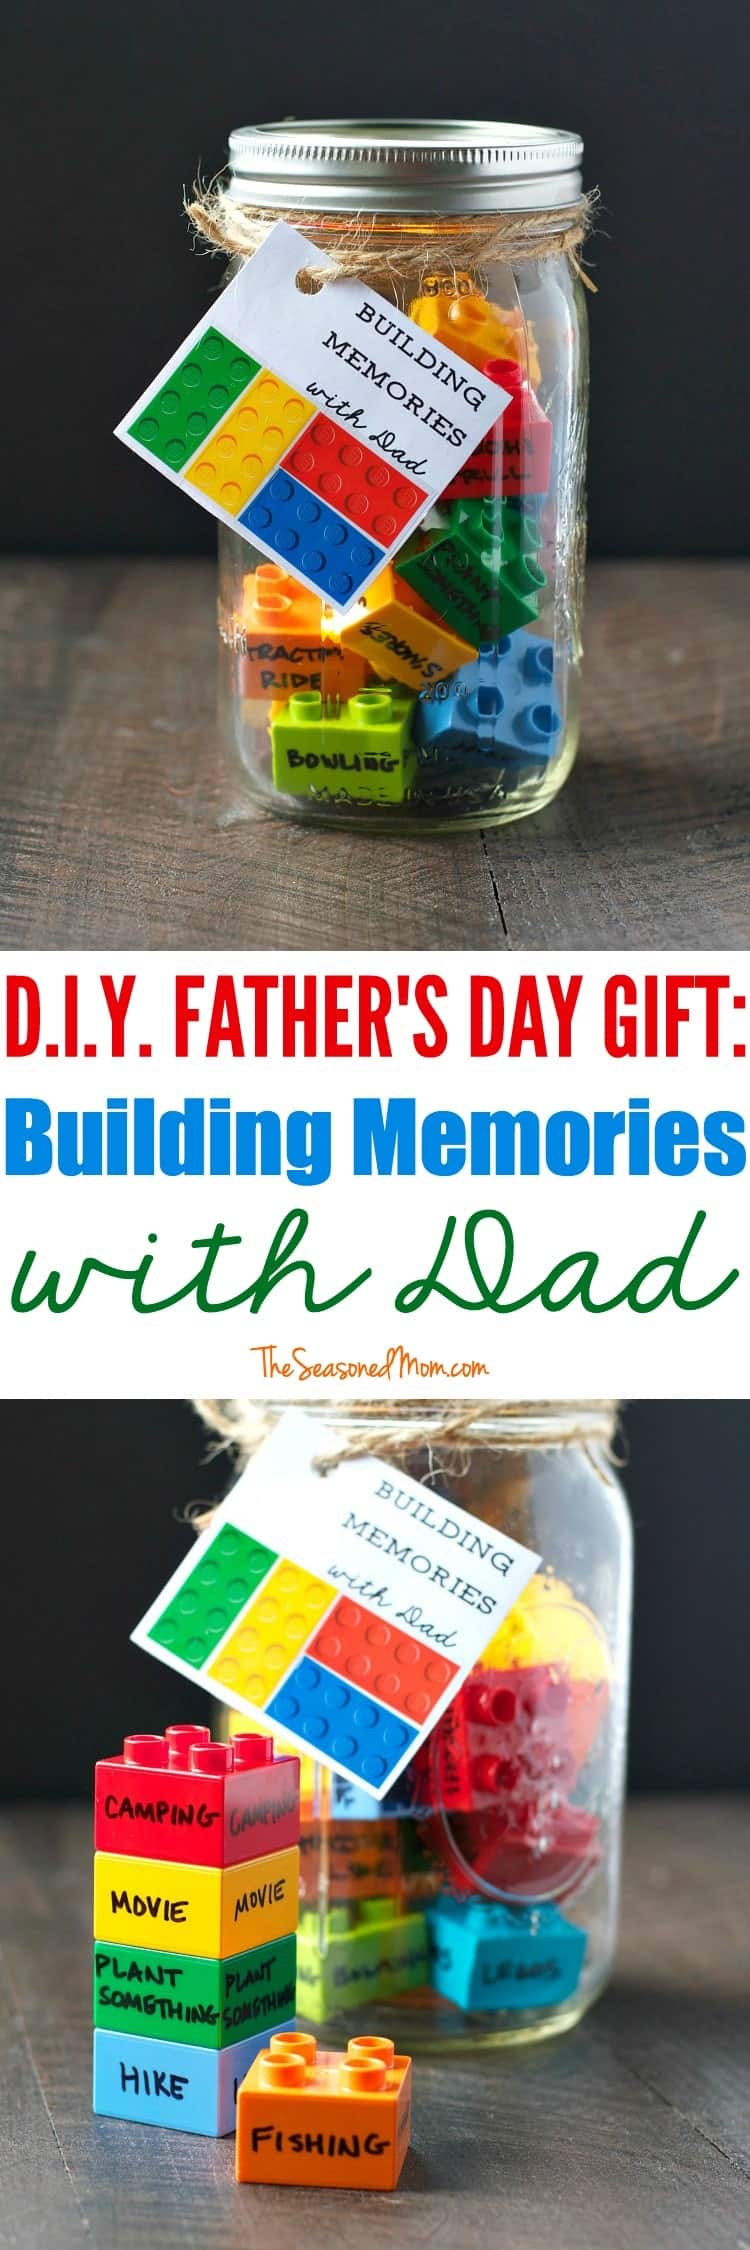 Diy father 39 s day gift building memories with dad the Gifts for home builders